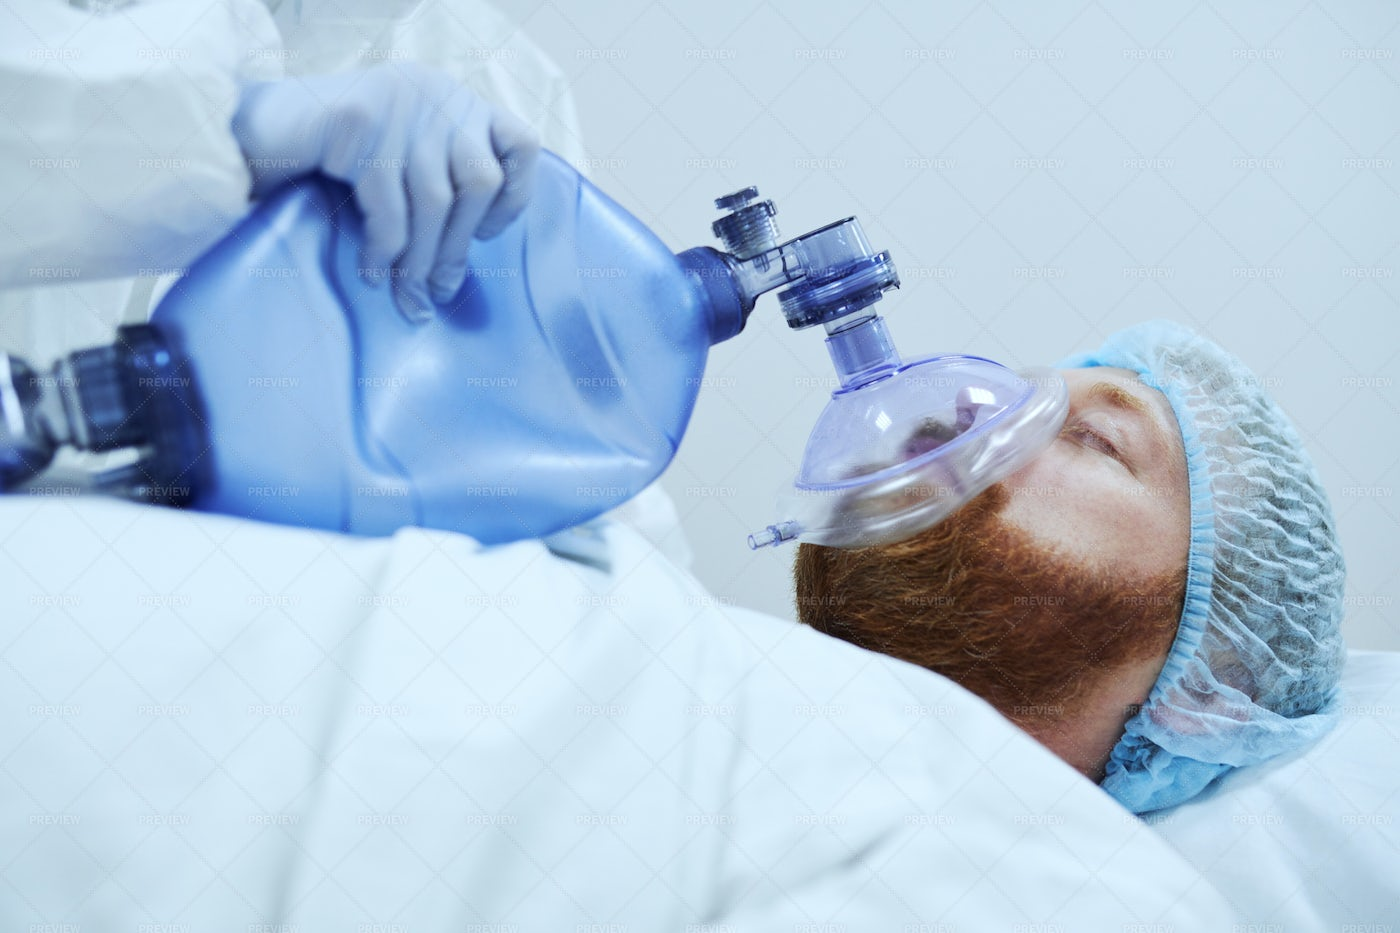 Patient In Oxygen Mask In Operating Room: Stock Photos